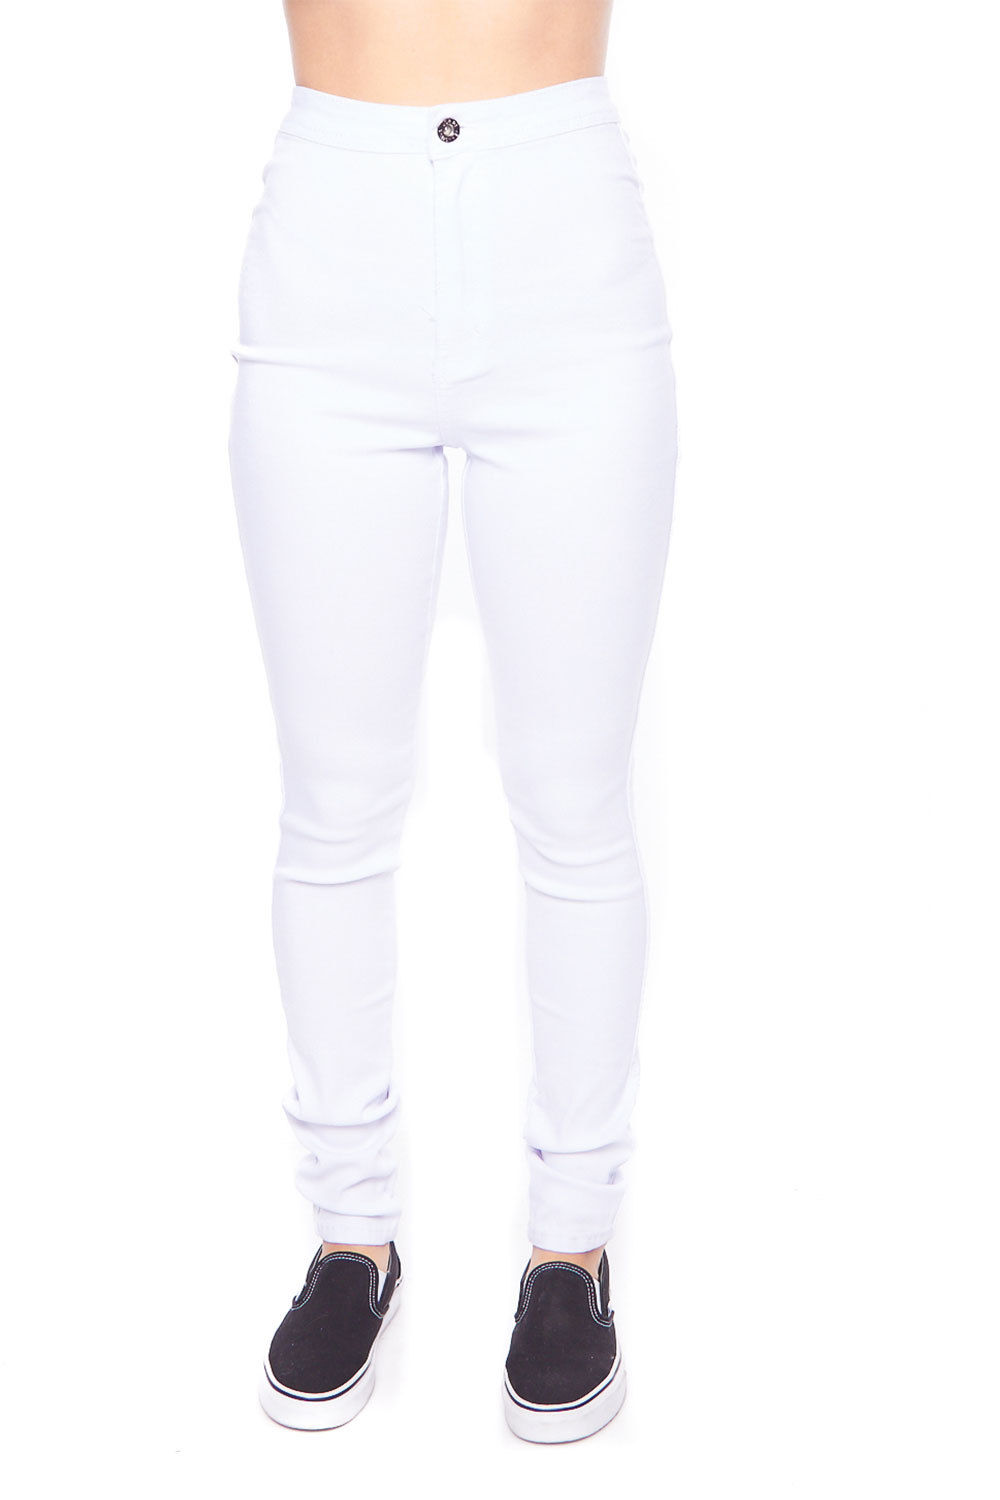 Womens French Terry Basic Jegging High Waist Skinny Pants GP2100-S-White